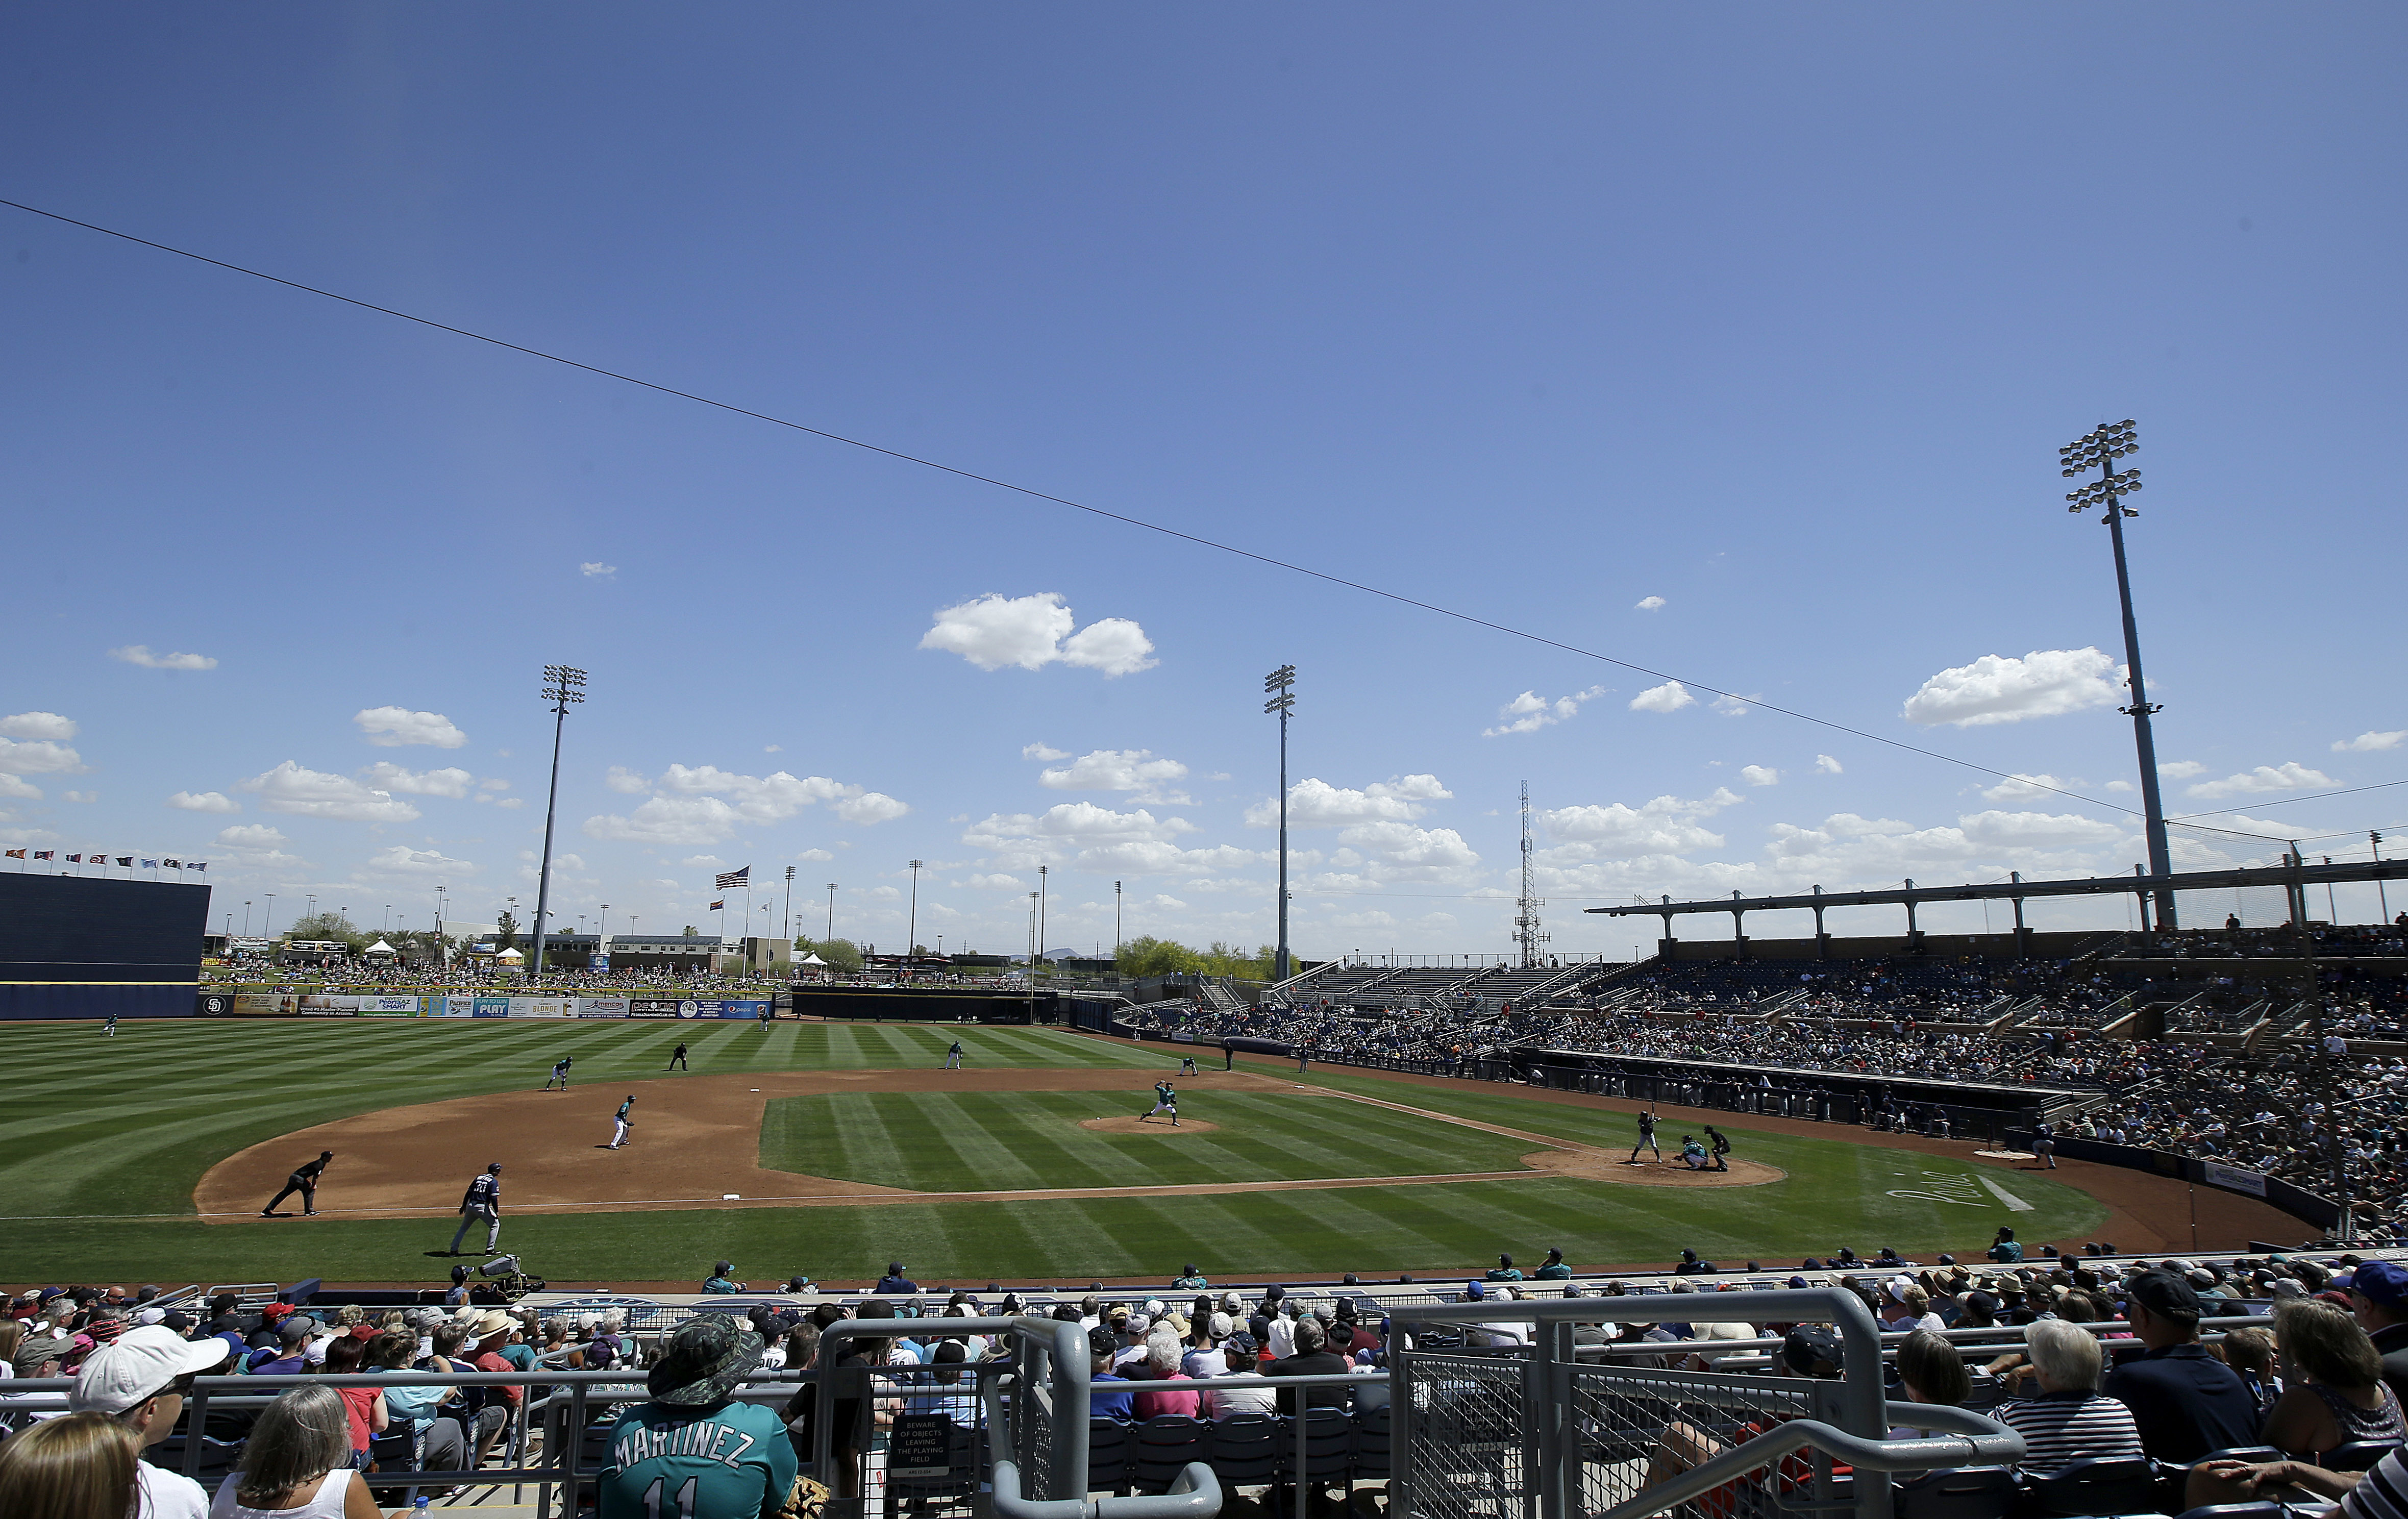 Fans at Peoria Sports Complex watch during the third inning of a spring training baseball game between the Seattle Mariners and the San Diego Padres in Peoria, Ariz., Wednesday, March 30, 2016. (AP Photo/Jeff Chiu)